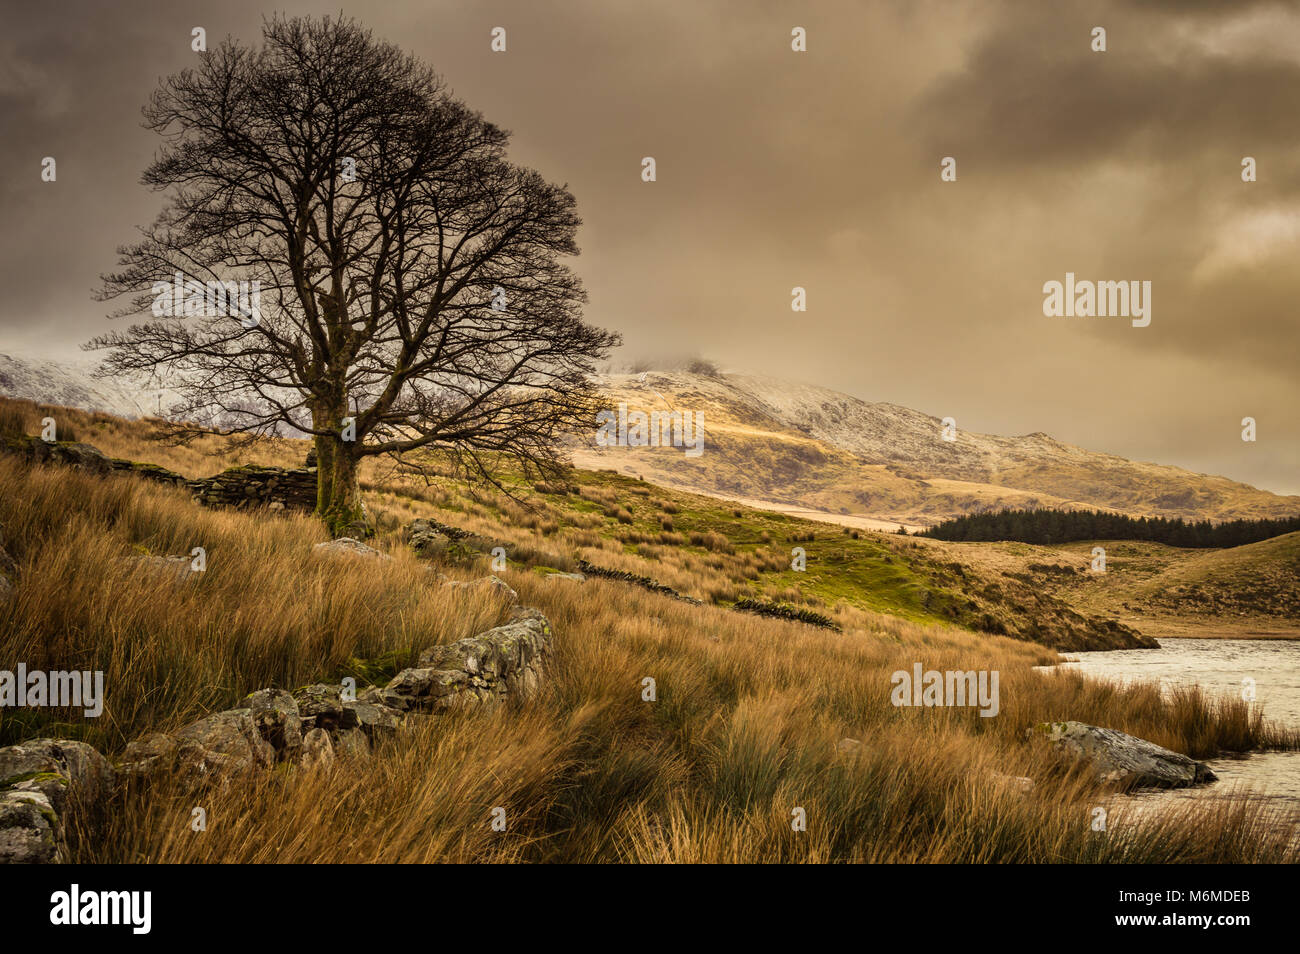 A lone tree by Llyn Dywarchen in the Snowdonia National Park, with a submerged fence and ruined wall. A foreboding - Stock Image